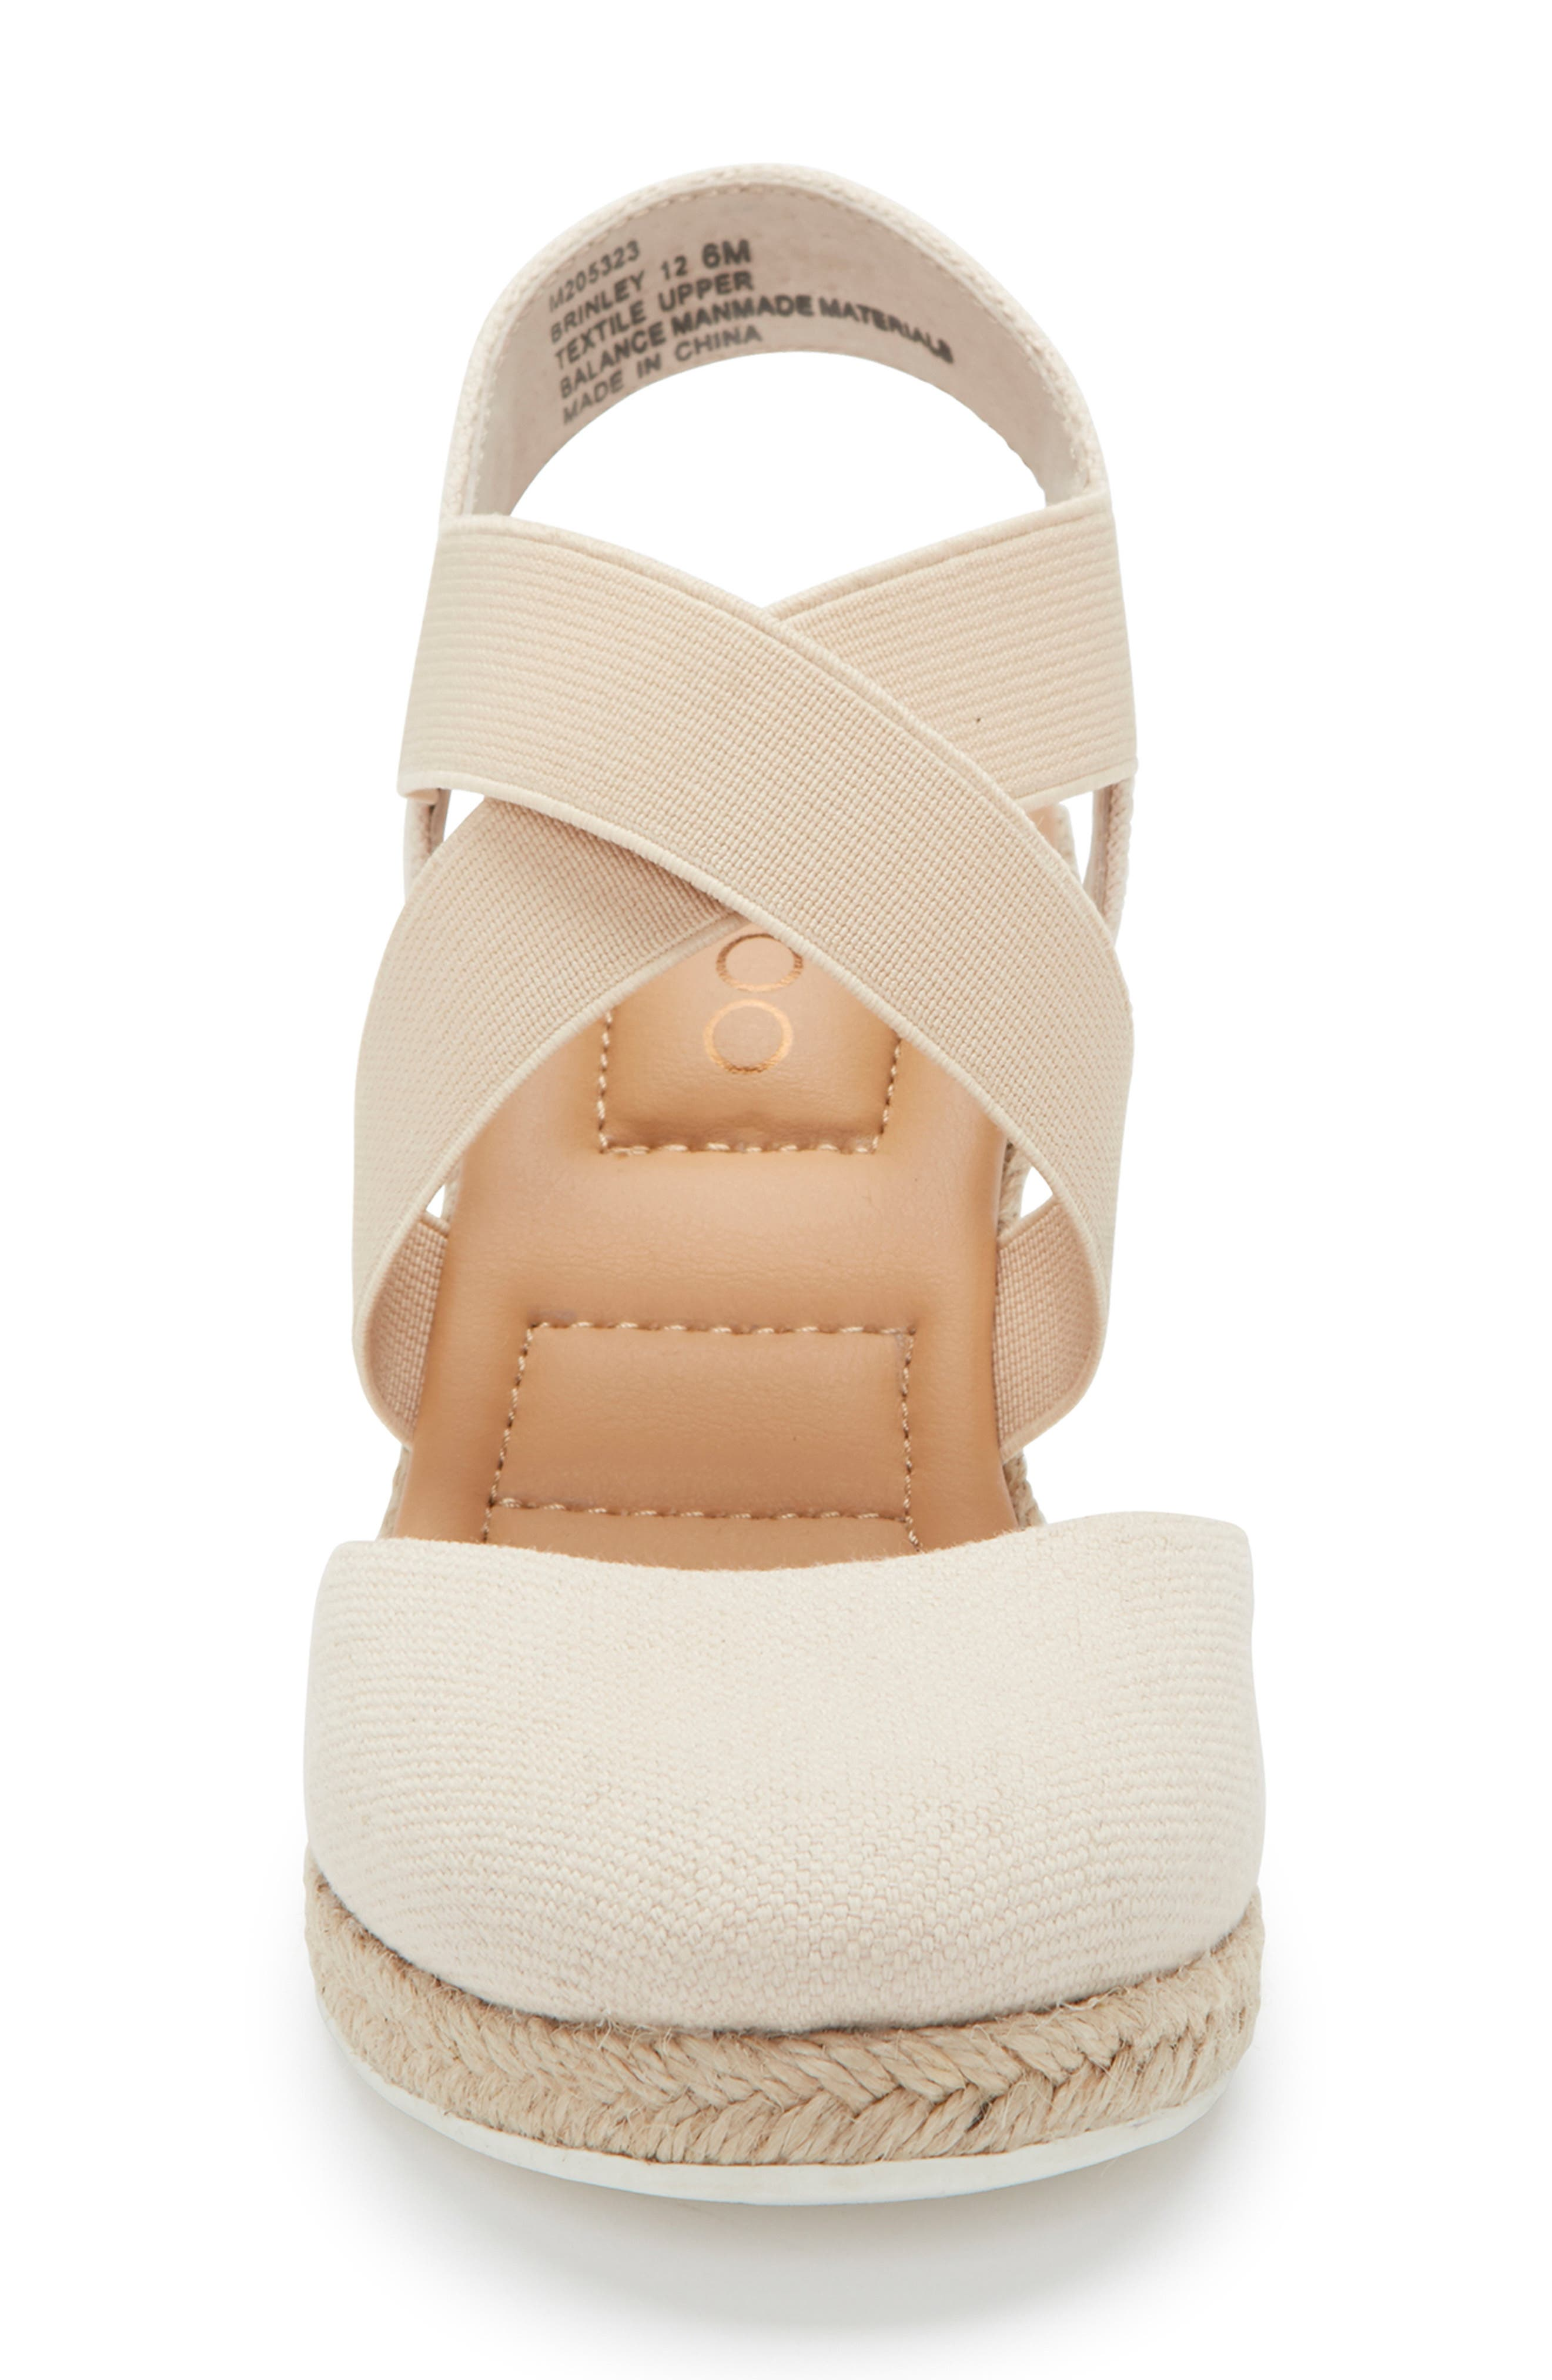 ME TOO, Brinley Espadrille Wedge, Alternate thumbnail 4, color, NATURAL CANVAS